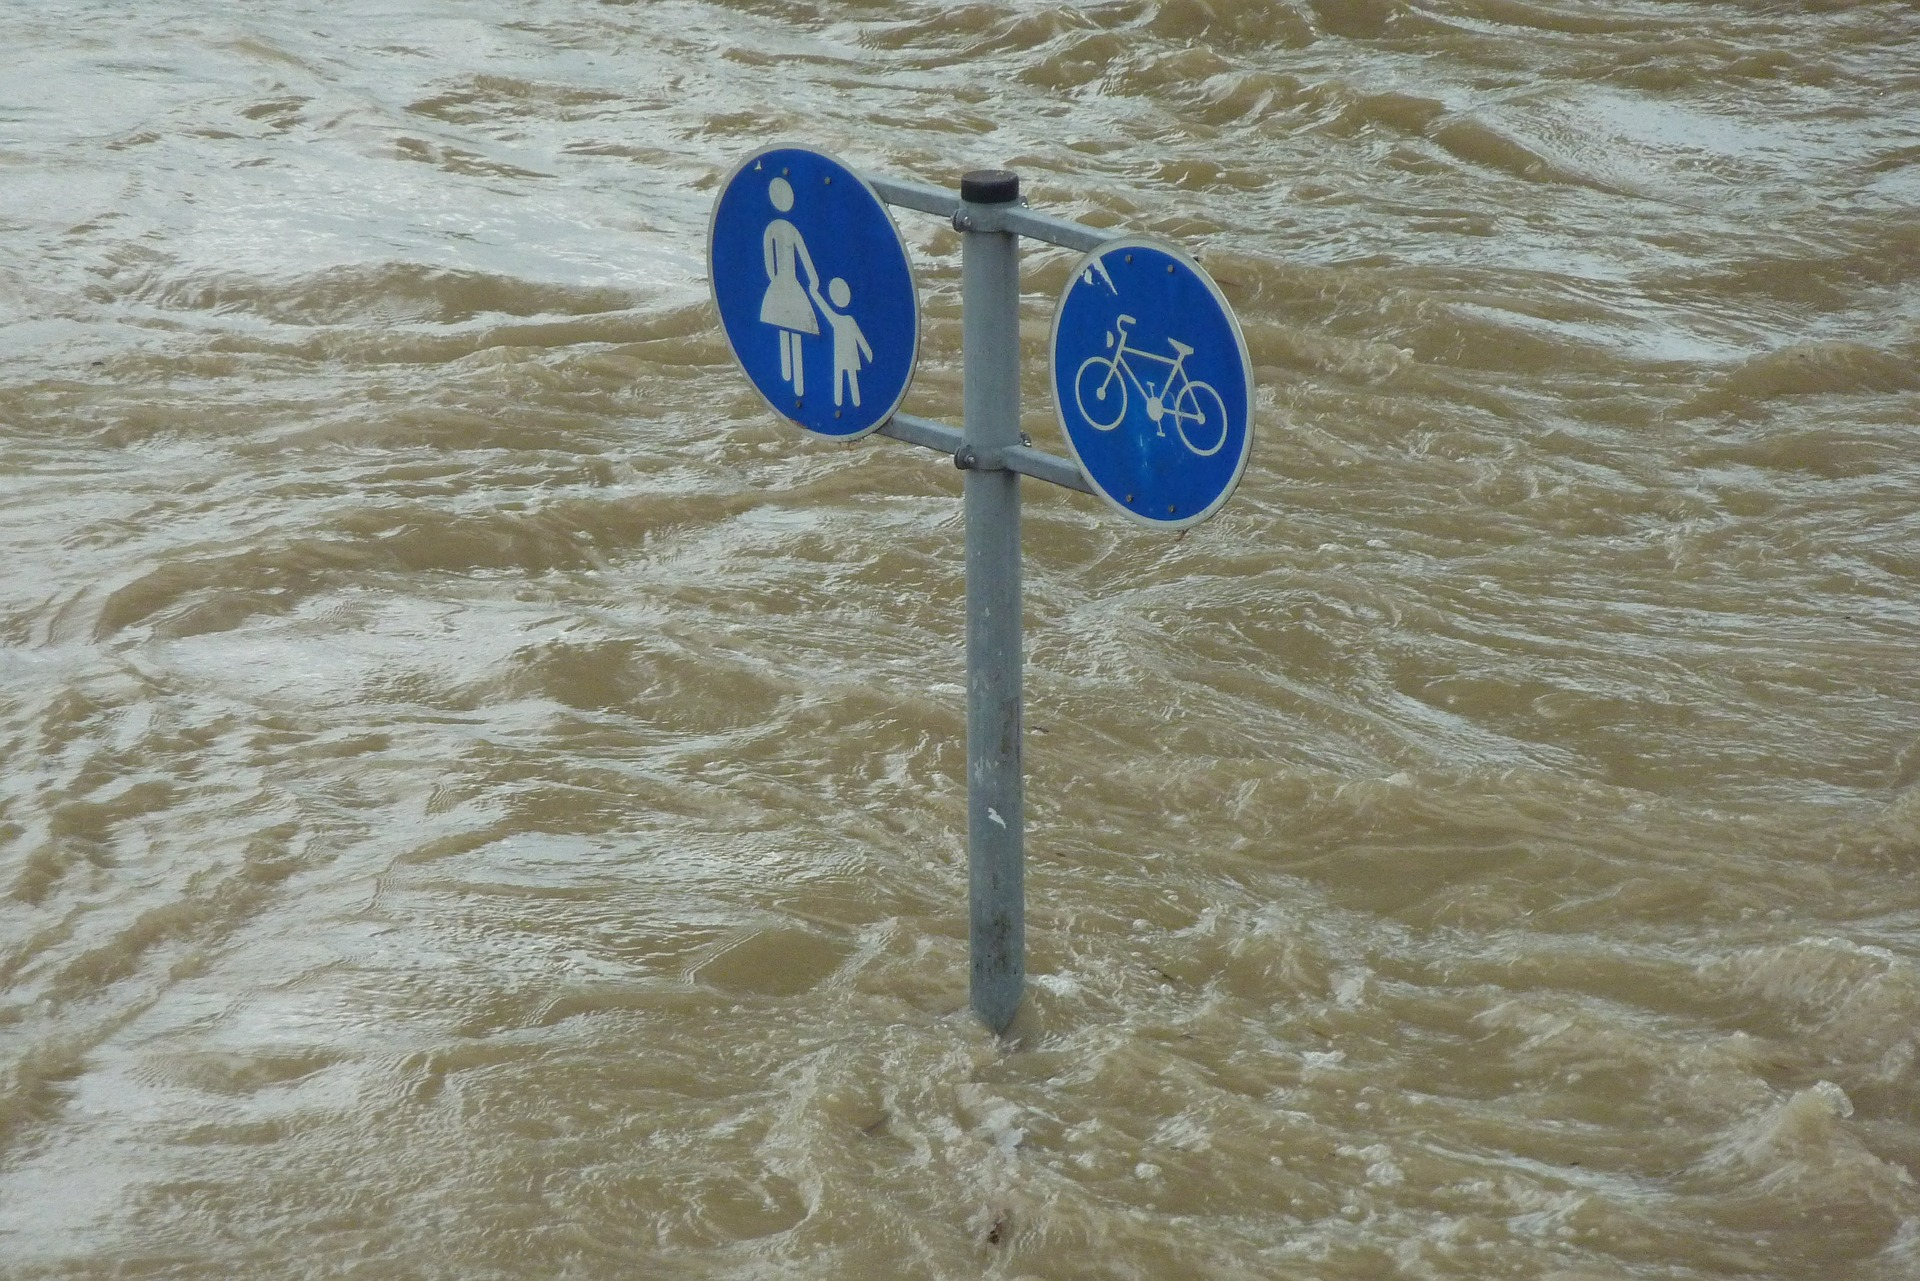 IBS-engineered-products-sign-under-flooding